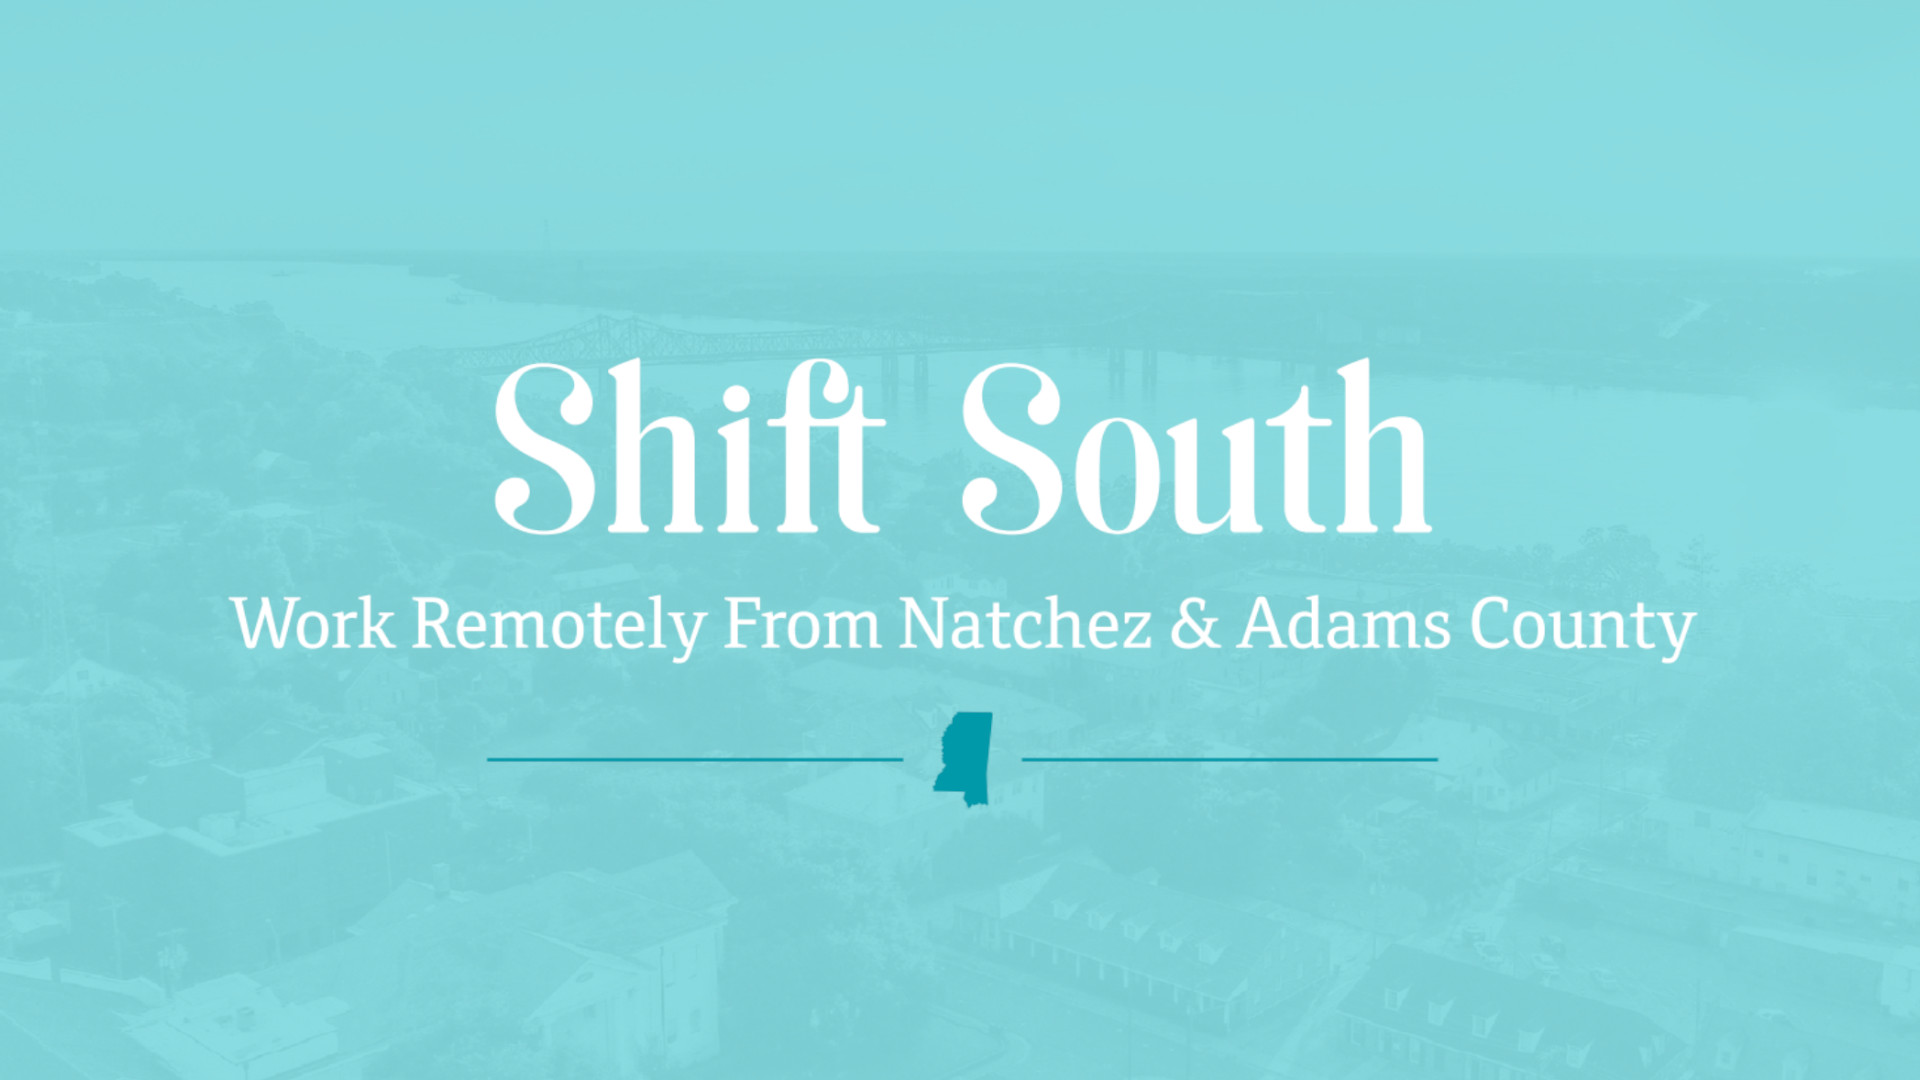 Shift South, Workign Remotely in Natchez / Adam County